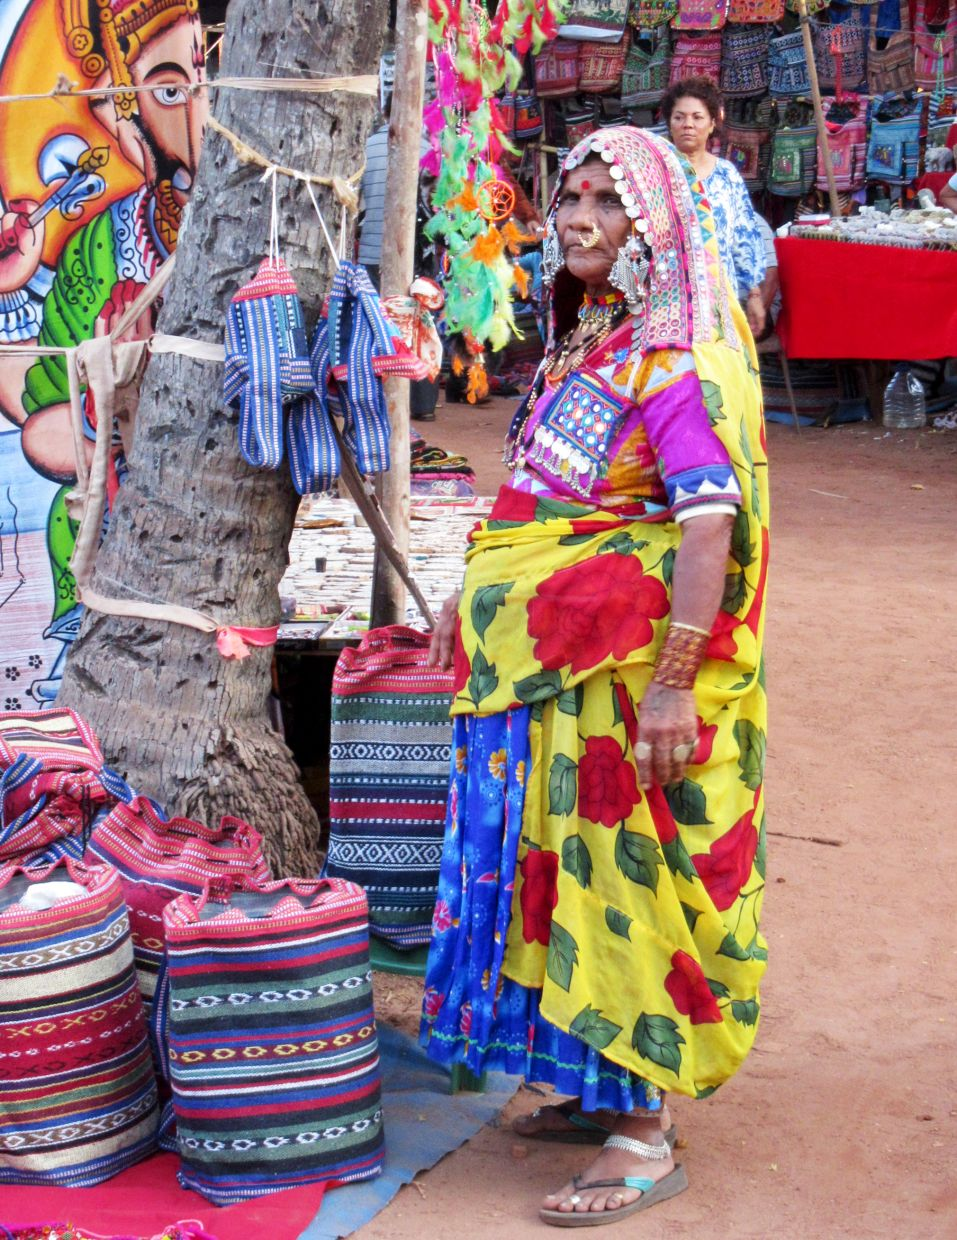 The Anjuna market, held on Wednesdays, is used to be known as the Hippie Market.